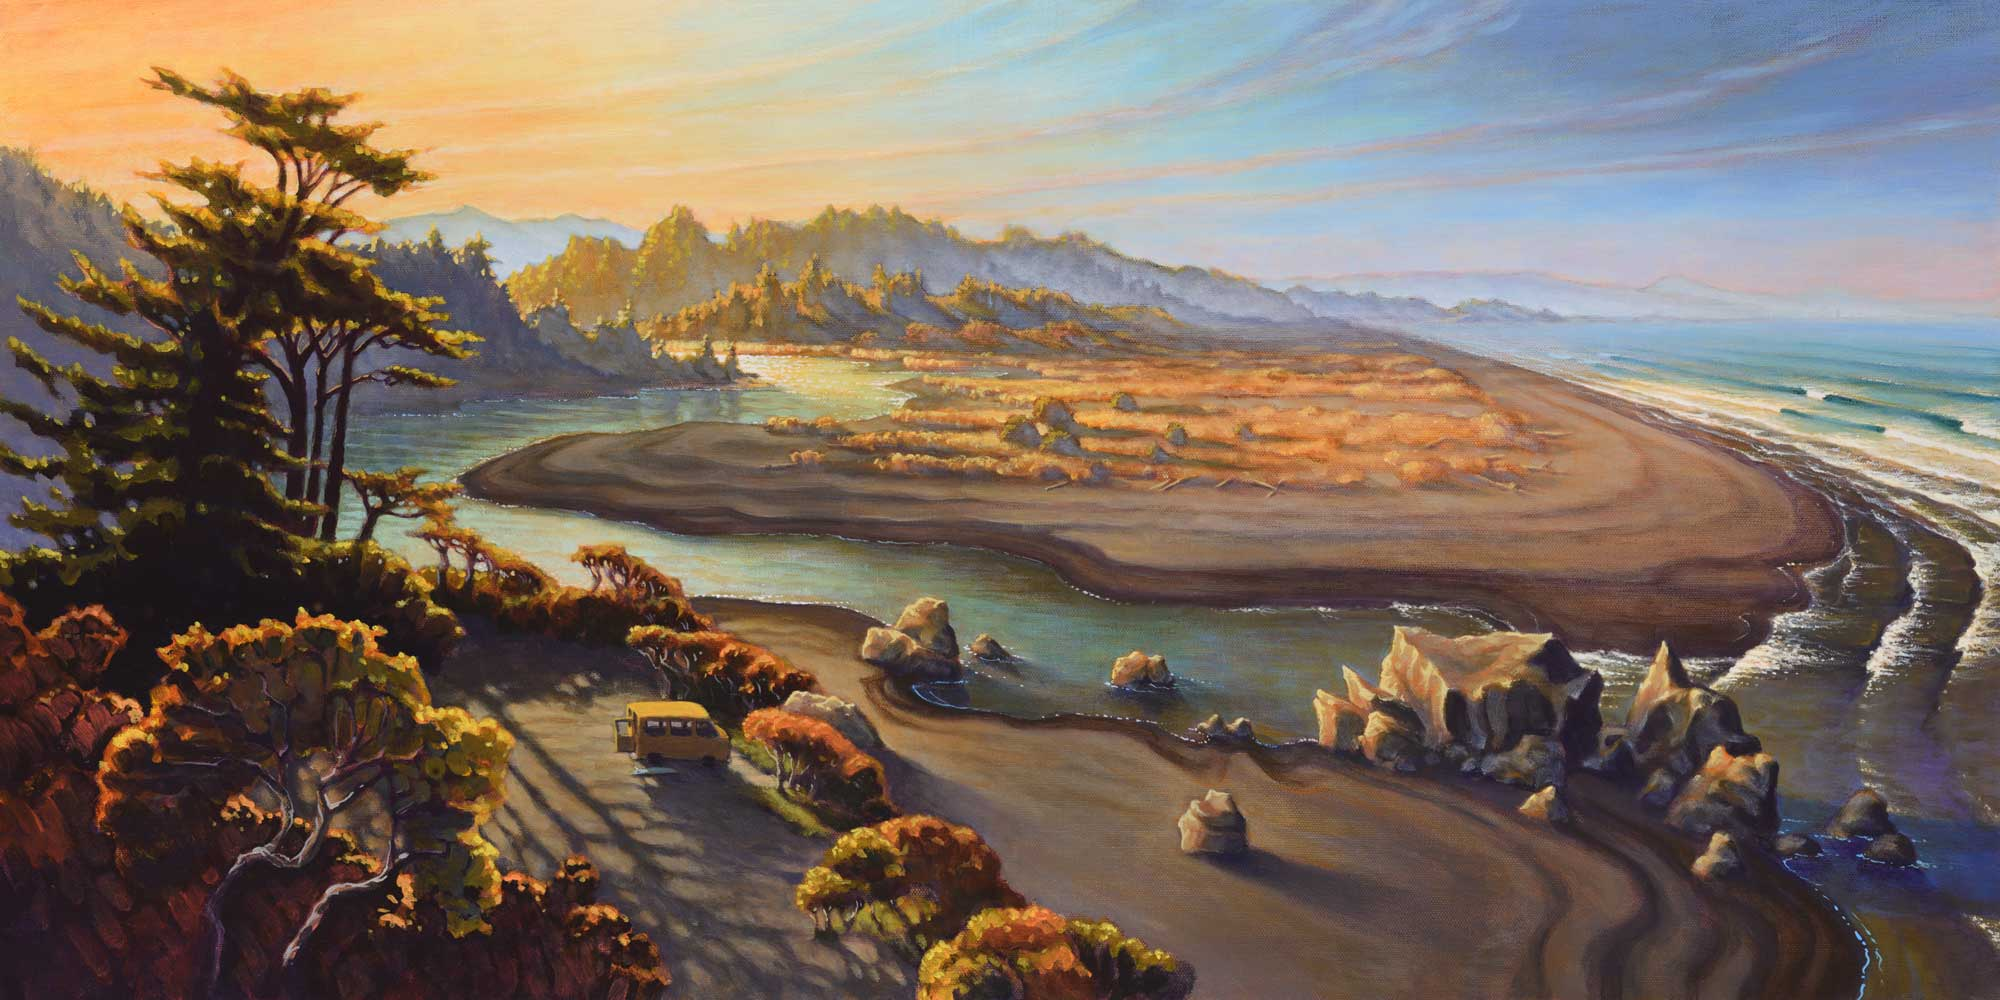 A landscape painting of Little River at Moonstone beach on Humboldt's Trinidad coast of northern California